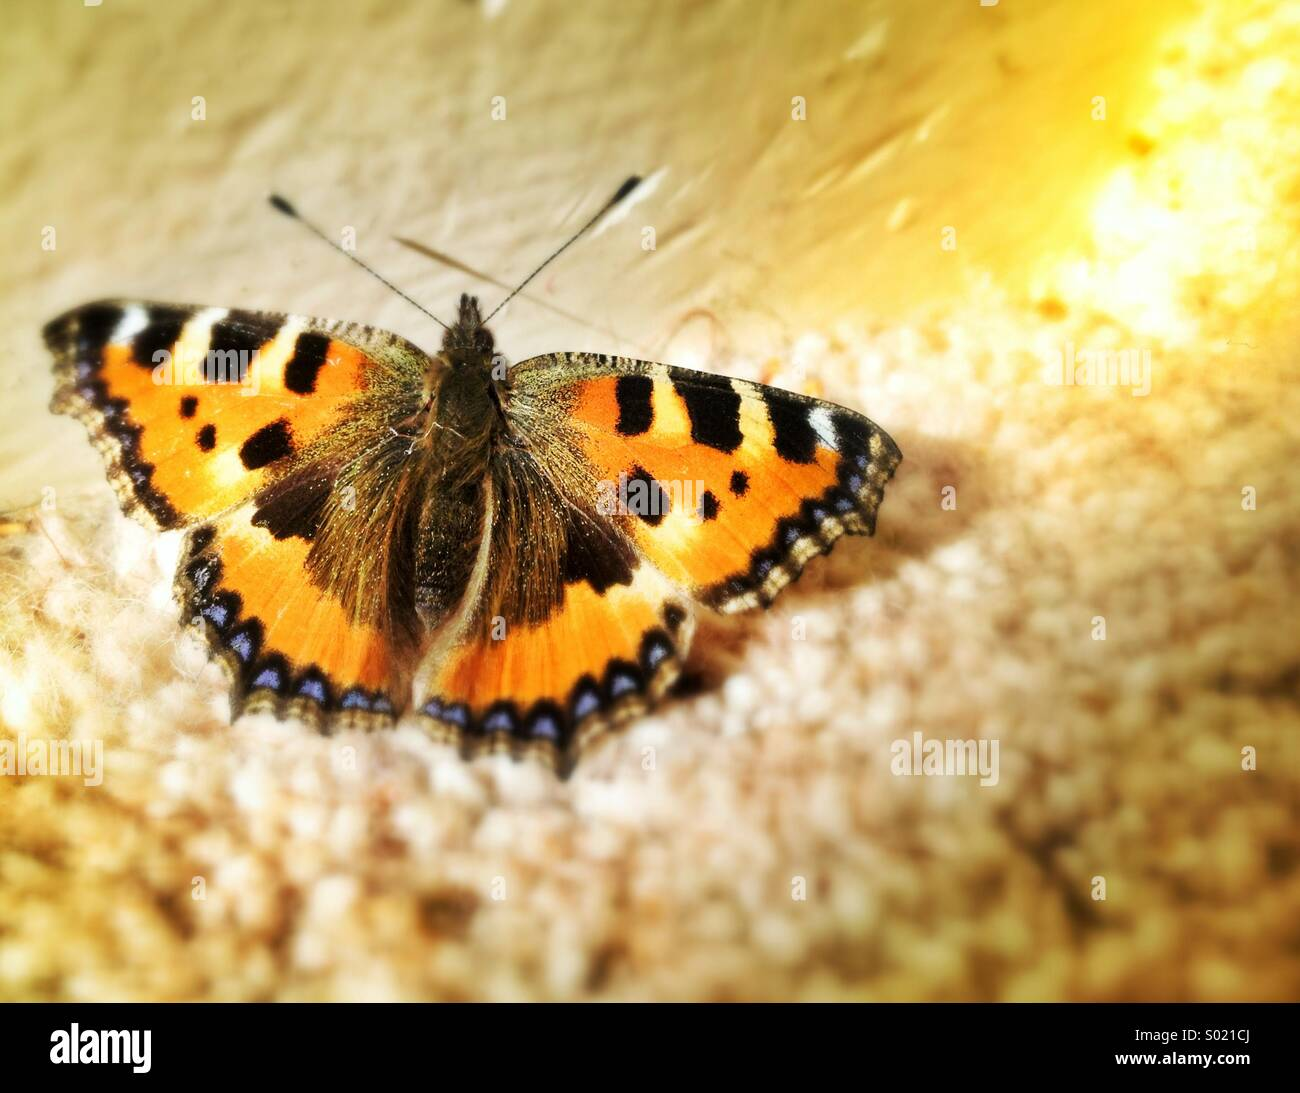 Small tortoise shell butterfly, close up - Stock Image